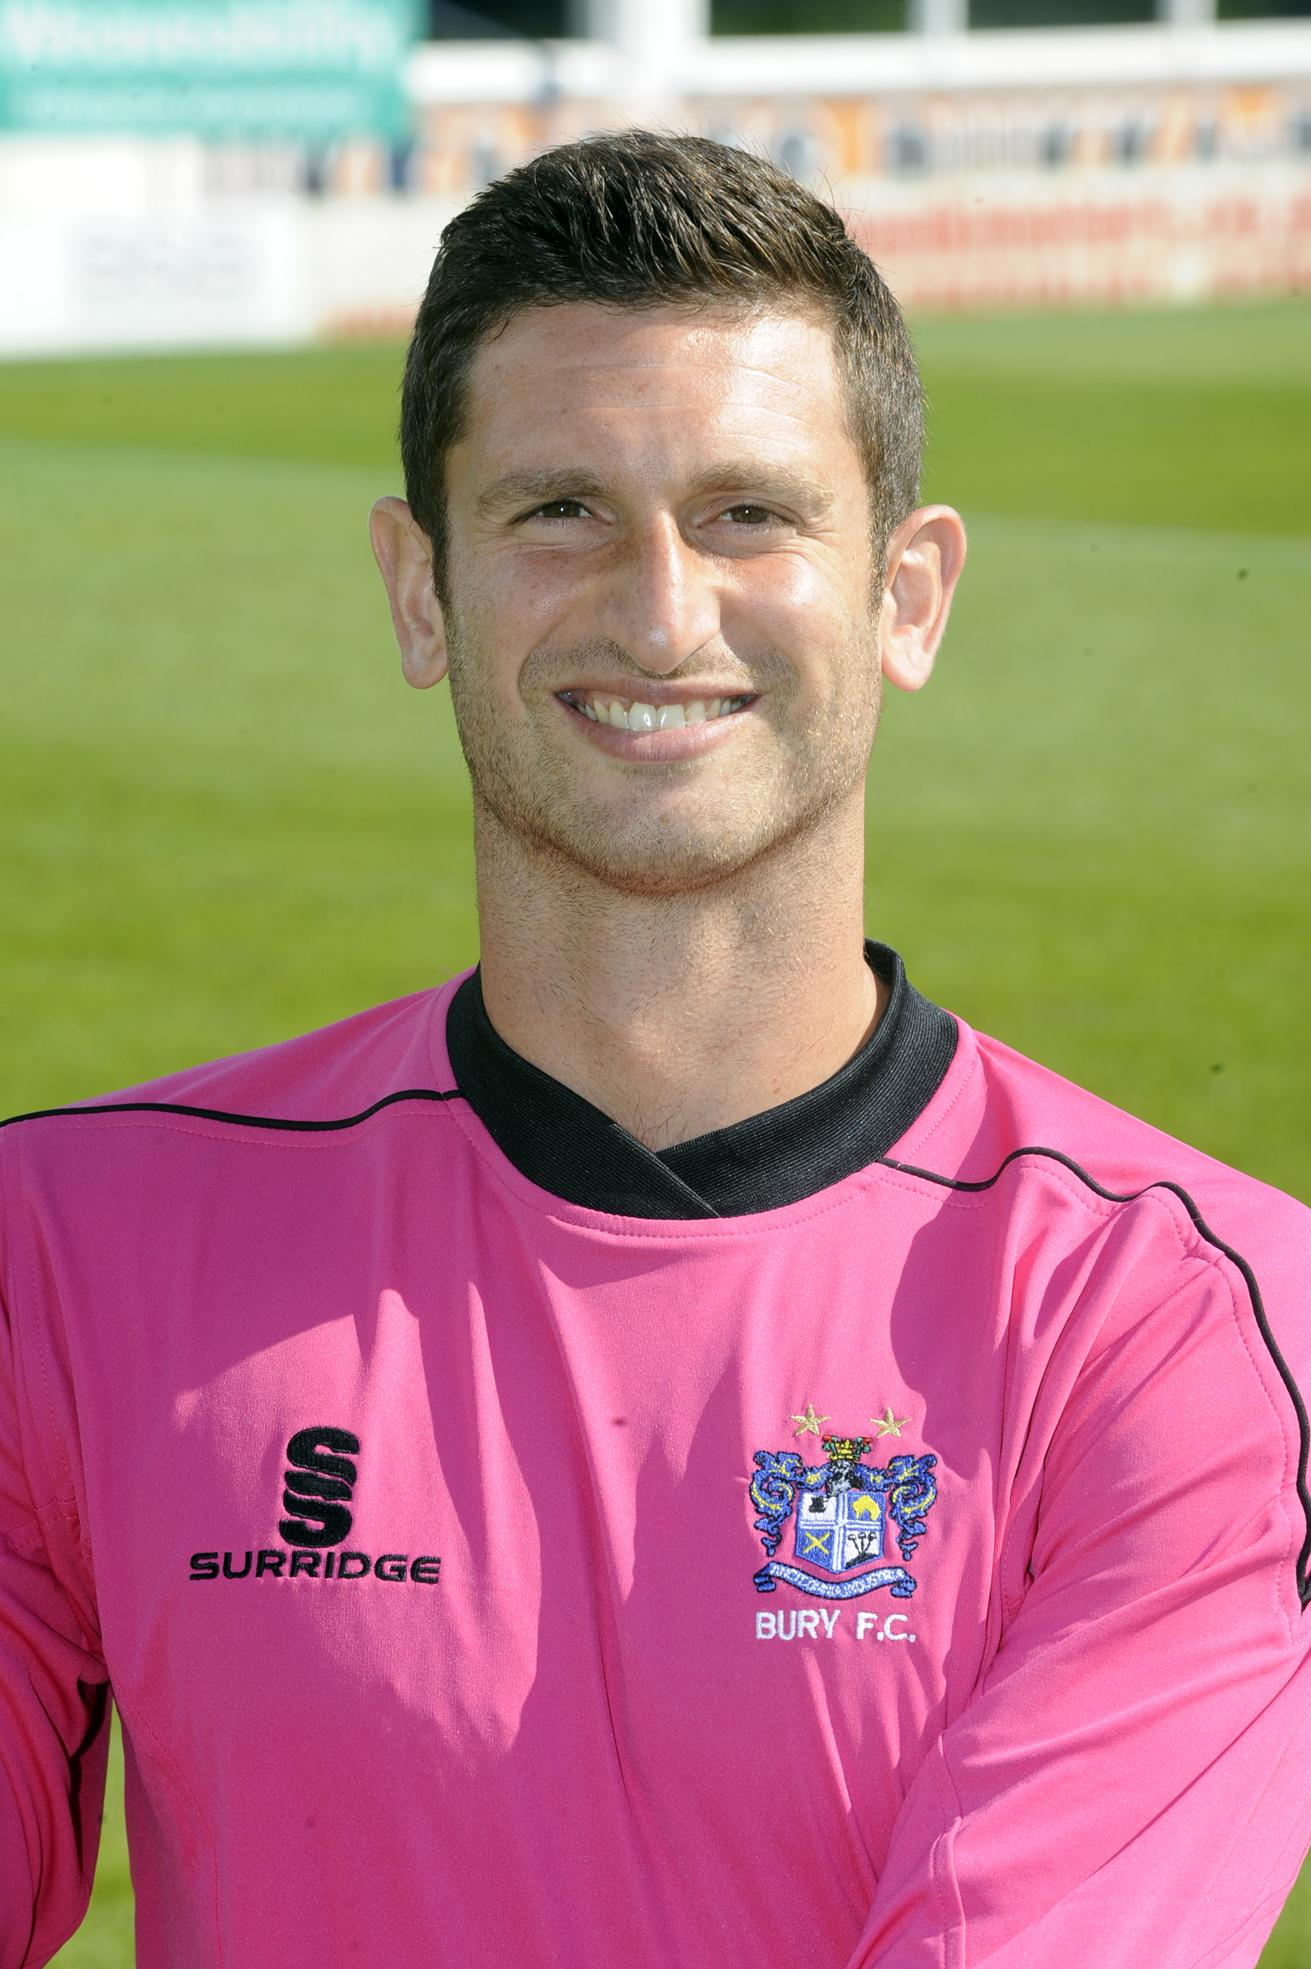 We're all one big happy family, says Bury stopper Shwan Jalal